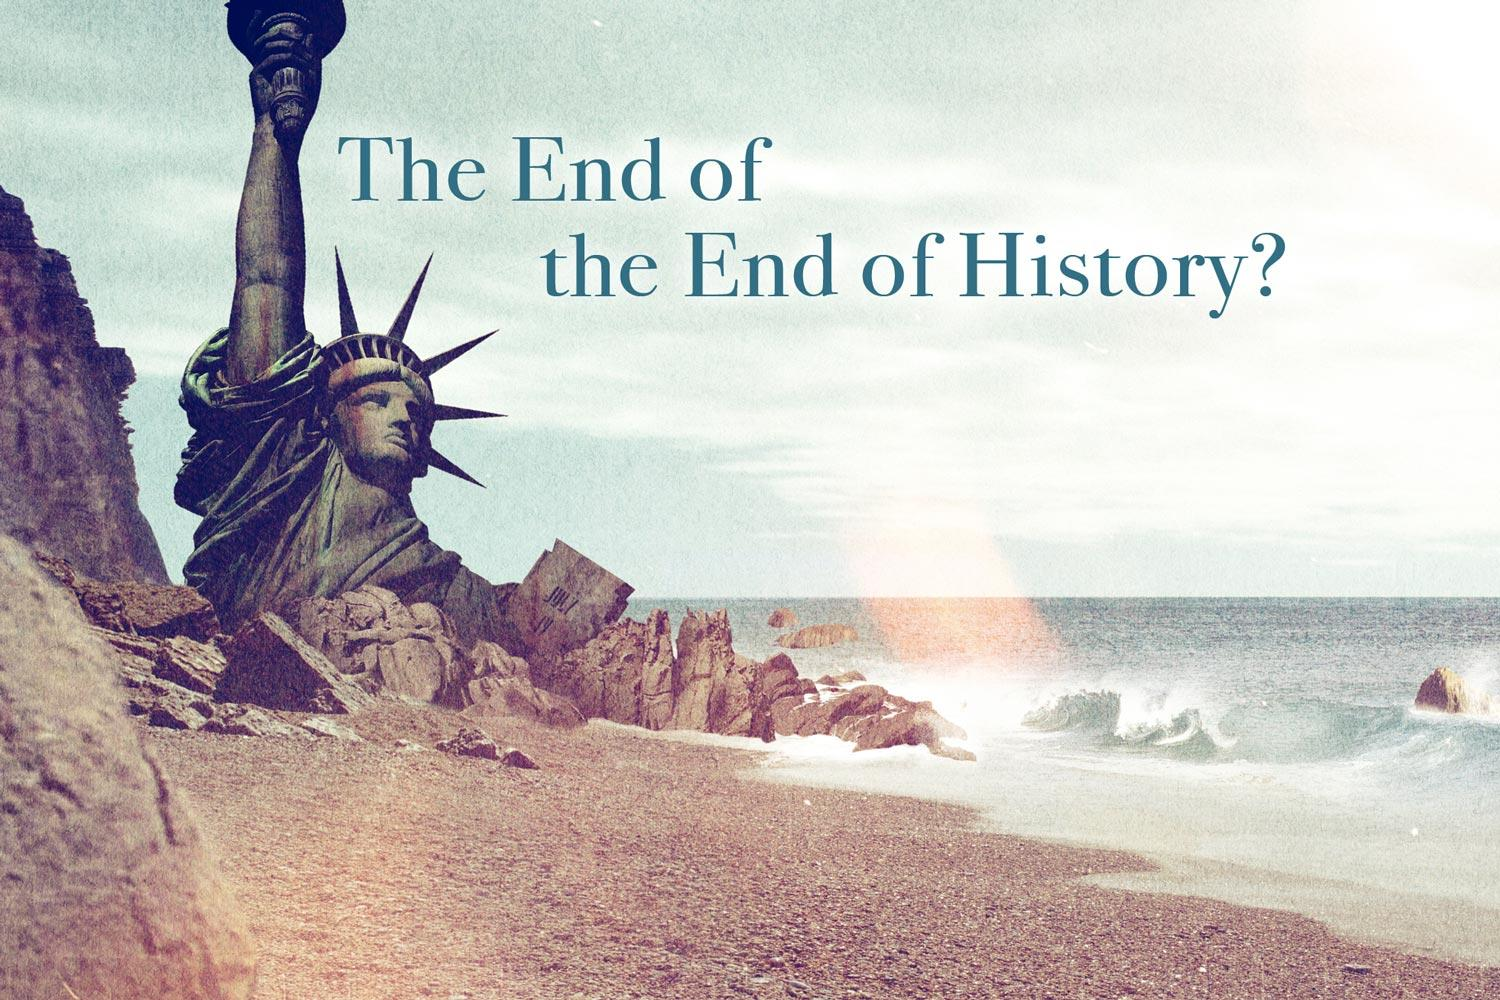 The End of the End of History?